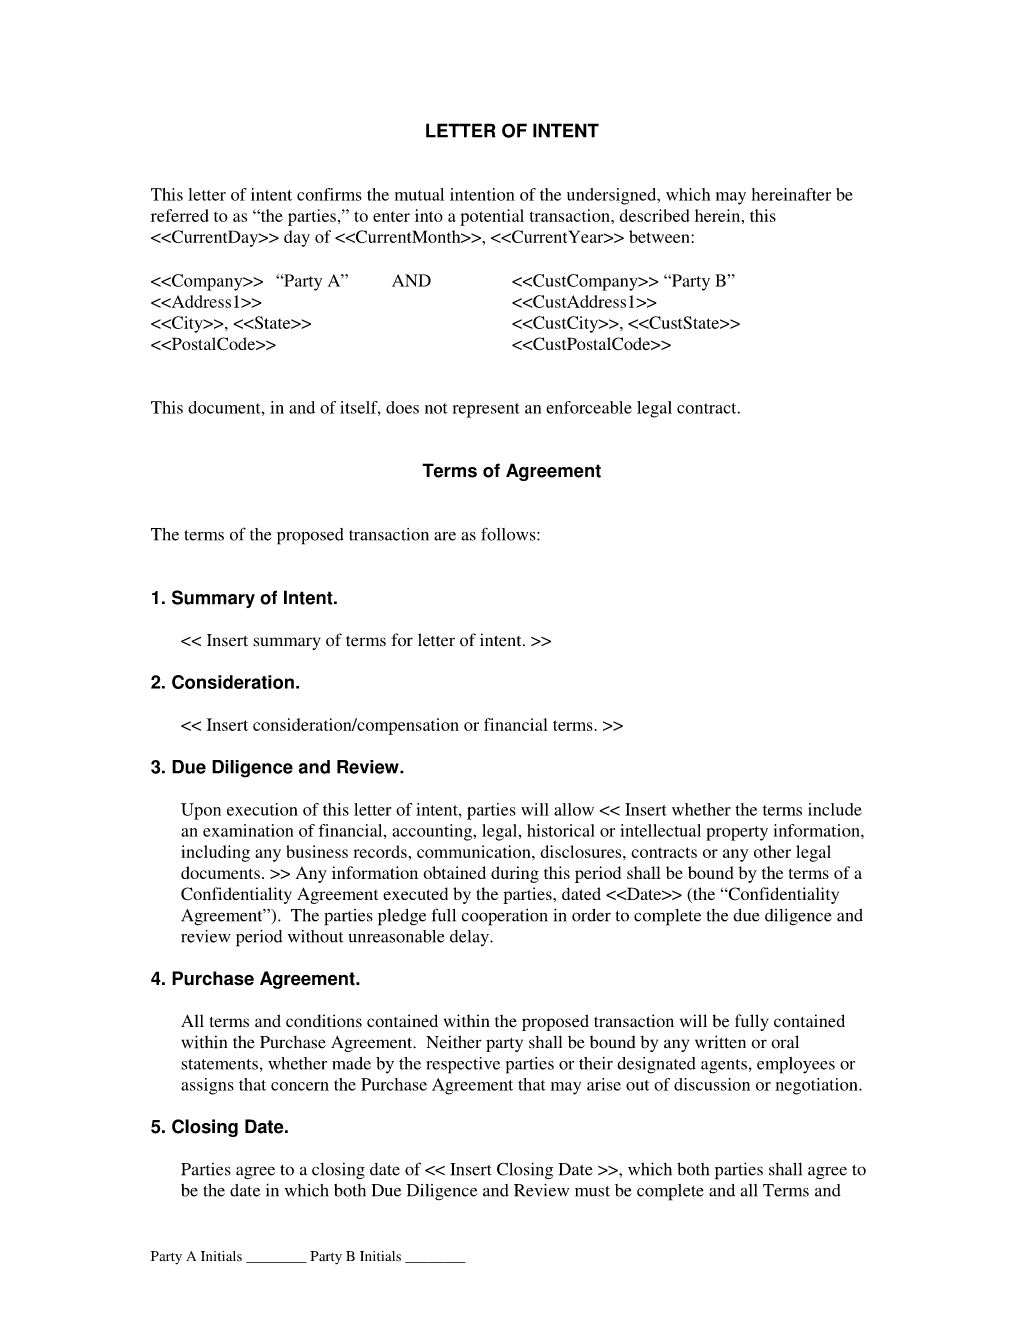 subcontractor letter of intent template Collection-Letter of Intent Agreement The Letter of Intent Agreement is intended for two parties who intend to enter into a contract This Letter of Intent is not a 4-c